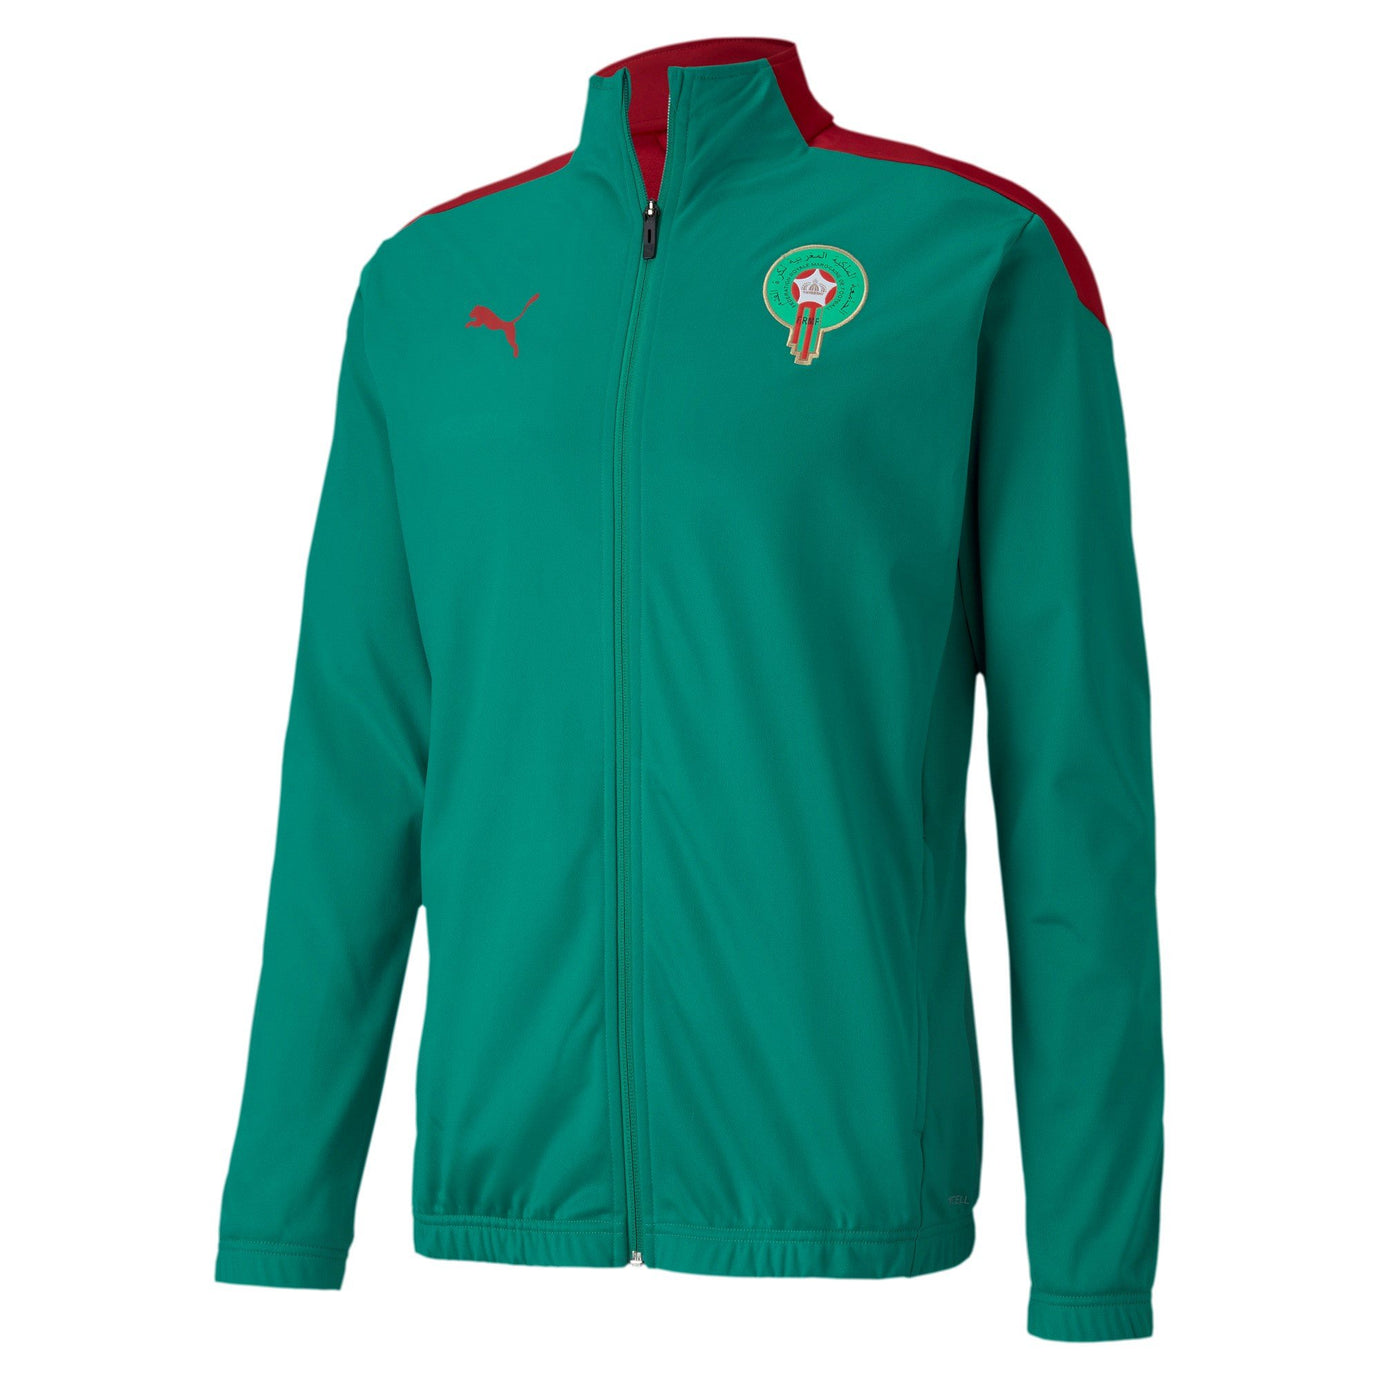 PUMA MAROKKO 20 STADIUM JACKET PEPPER GREEN/CHILI PEPPER